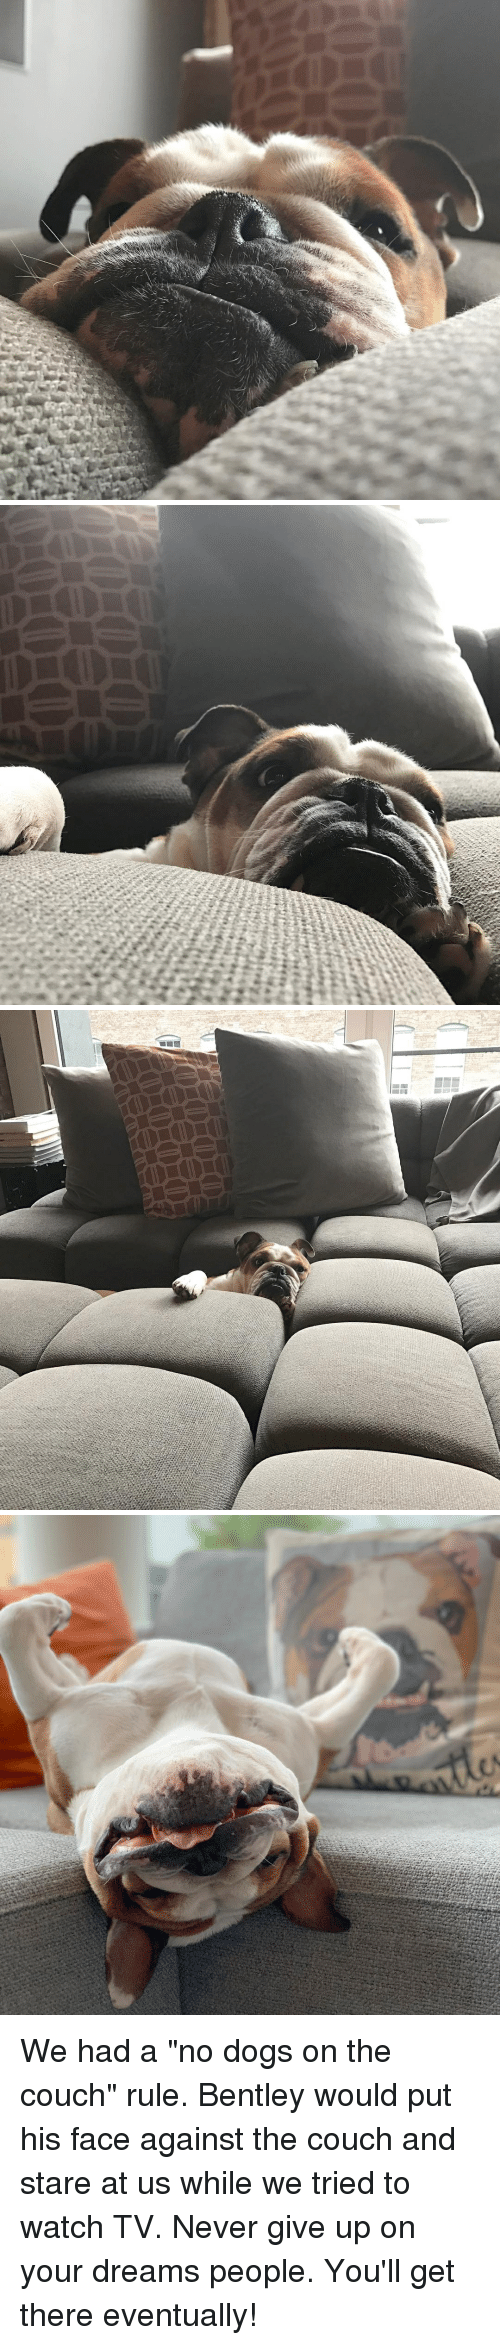 "Dogs, Bentley, and Couch: We had a ""no dogs on the couch"" rule. Bentley would put his face against the couch and stare at us while we tried to watch TV. Never give up on your dreams people. You'll get there eventually!"